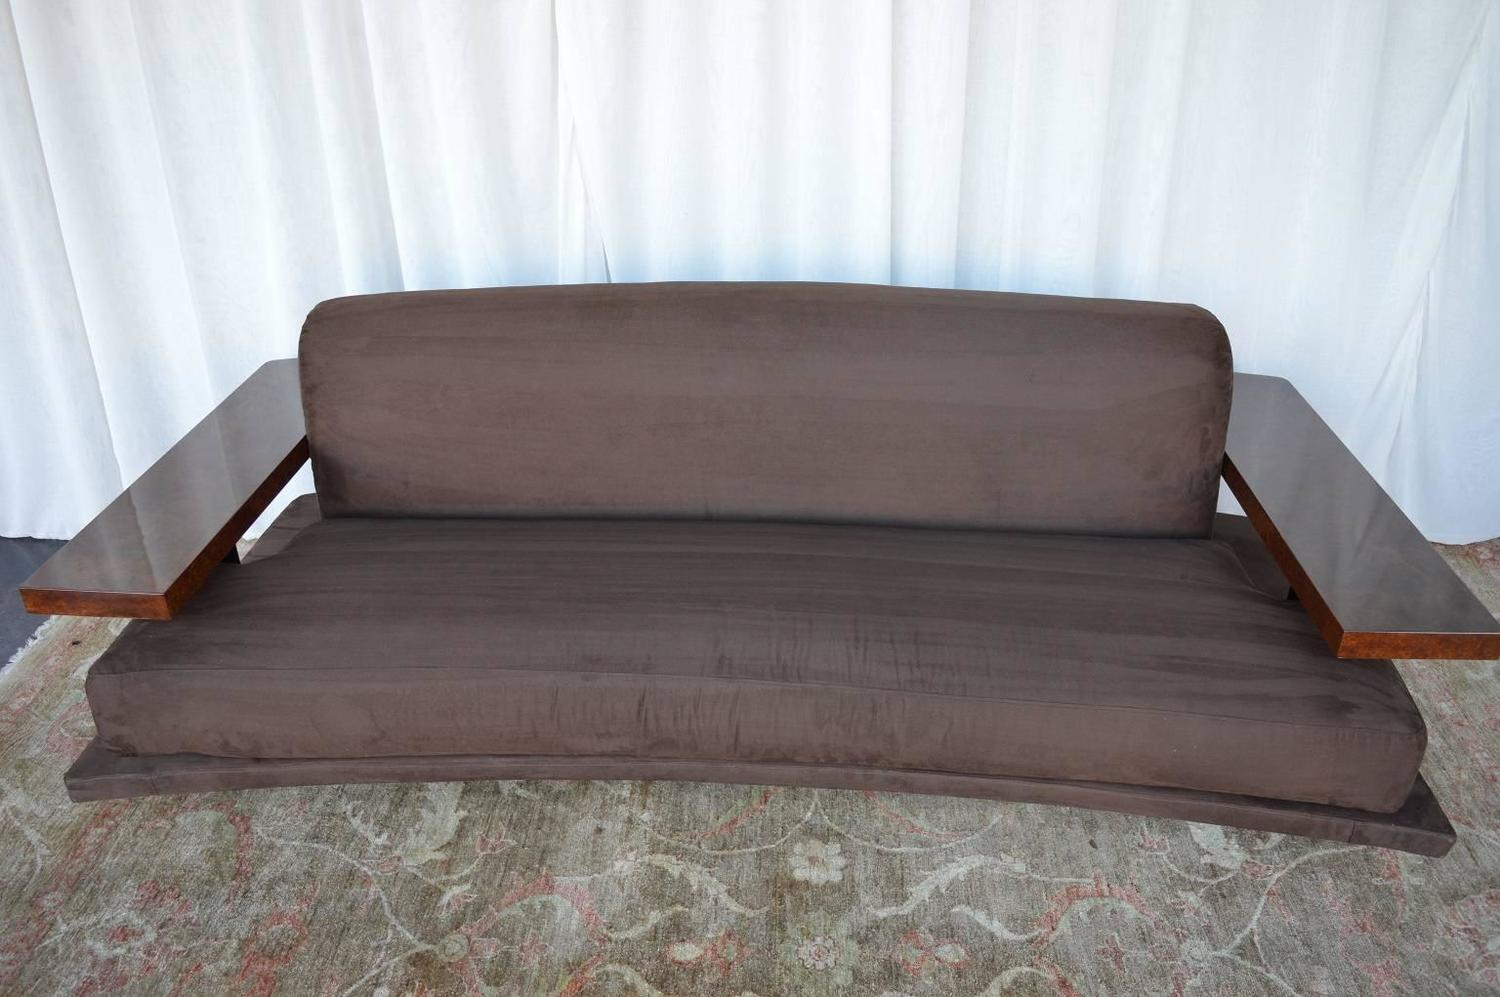 American art deco suede sofa for sale at 1stdibs for Suede couches for sale